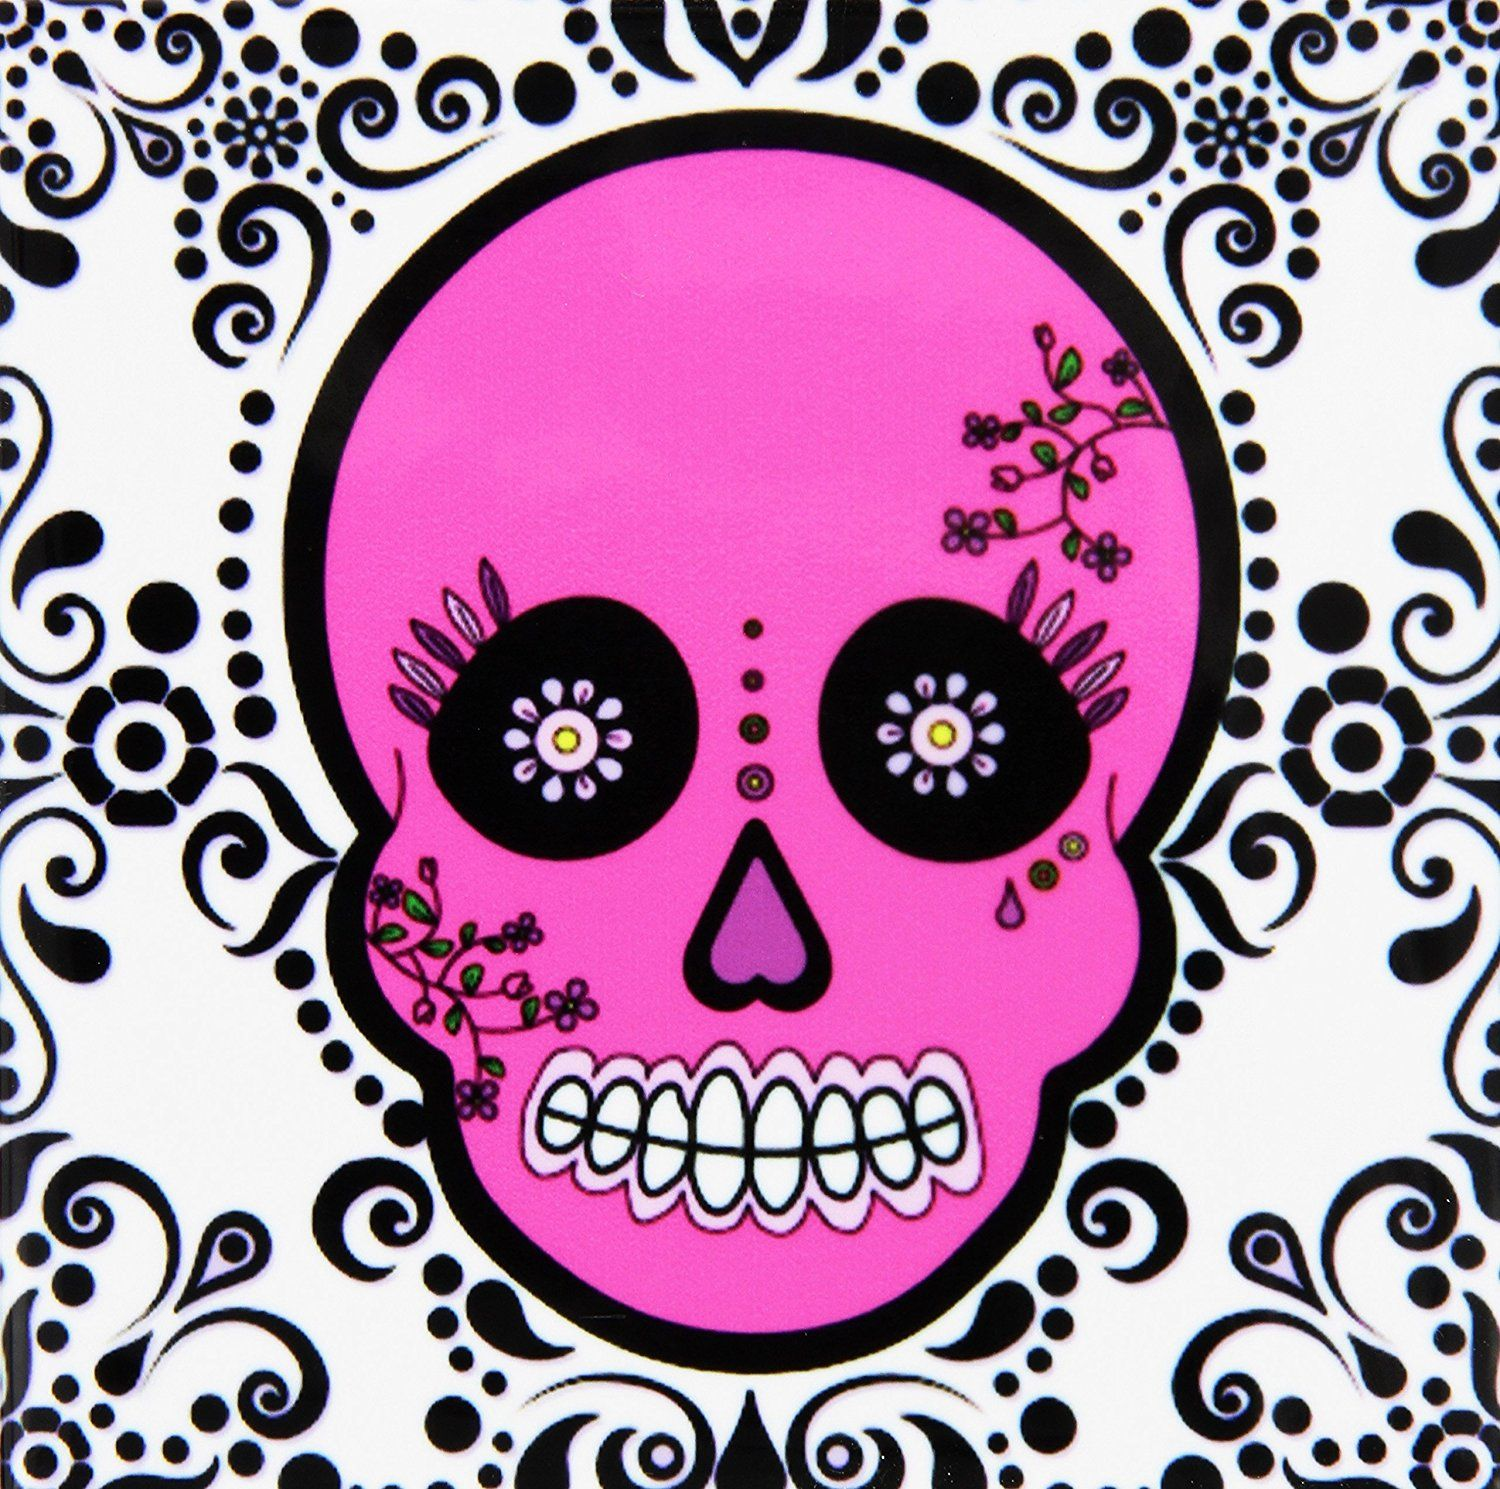 3drose cst288714 day of the dead skull dia de los muertos sugar day of the dead skull dia de los muertos sugar skull pink white black scroll design ceramic tile coasters set of 8 amazing product just a click away dailygadgetfo Images